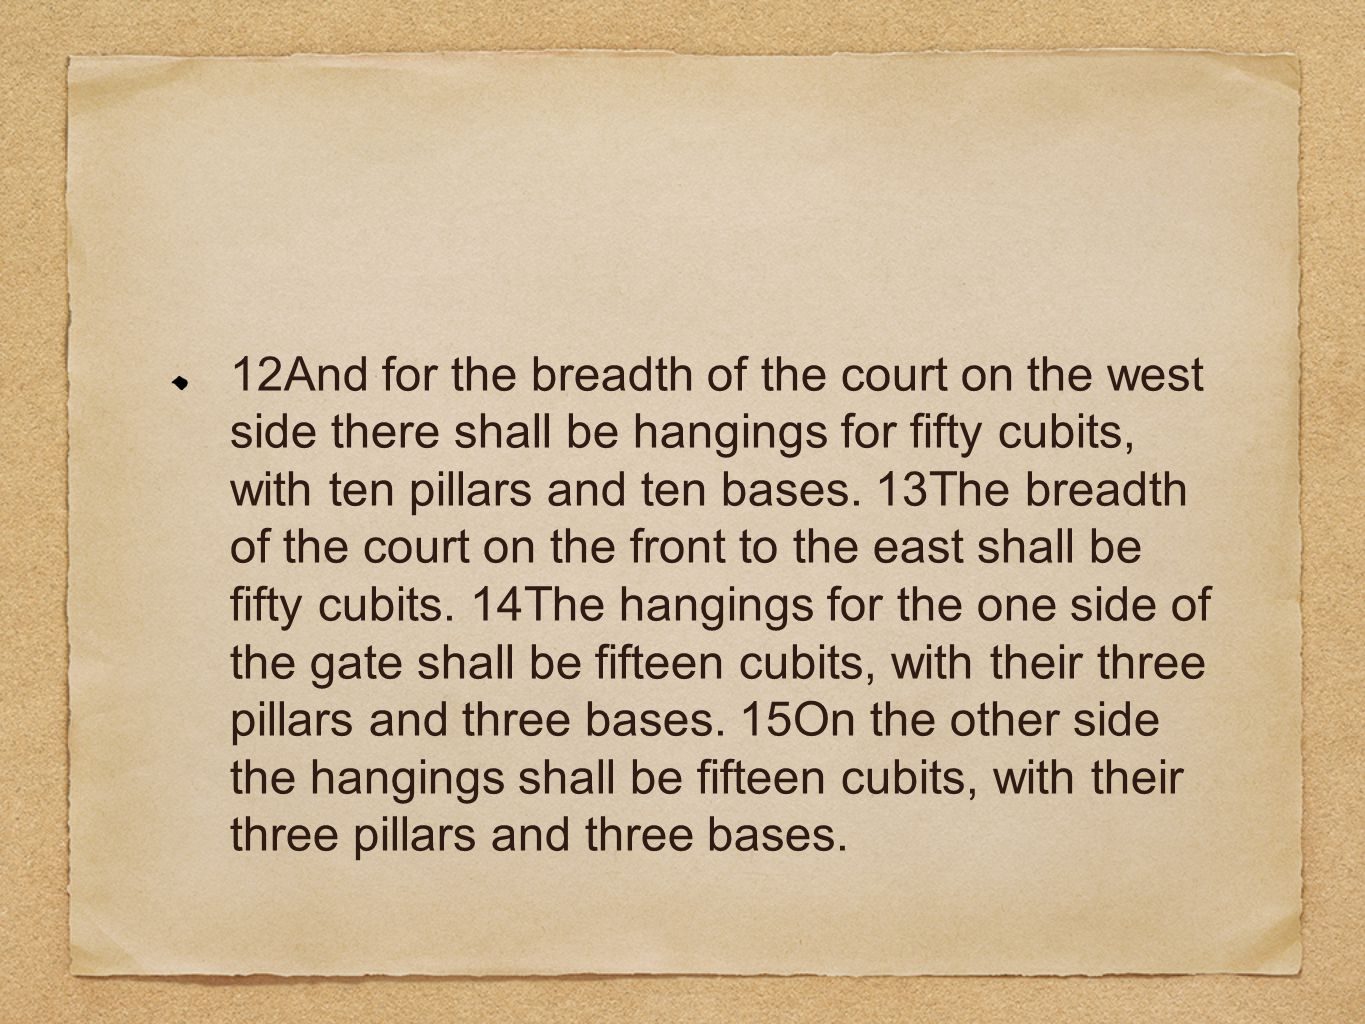 12And for the breadth of the court on the west side there shall be hangings for fifty cubits, with ten pillars and ten bases.